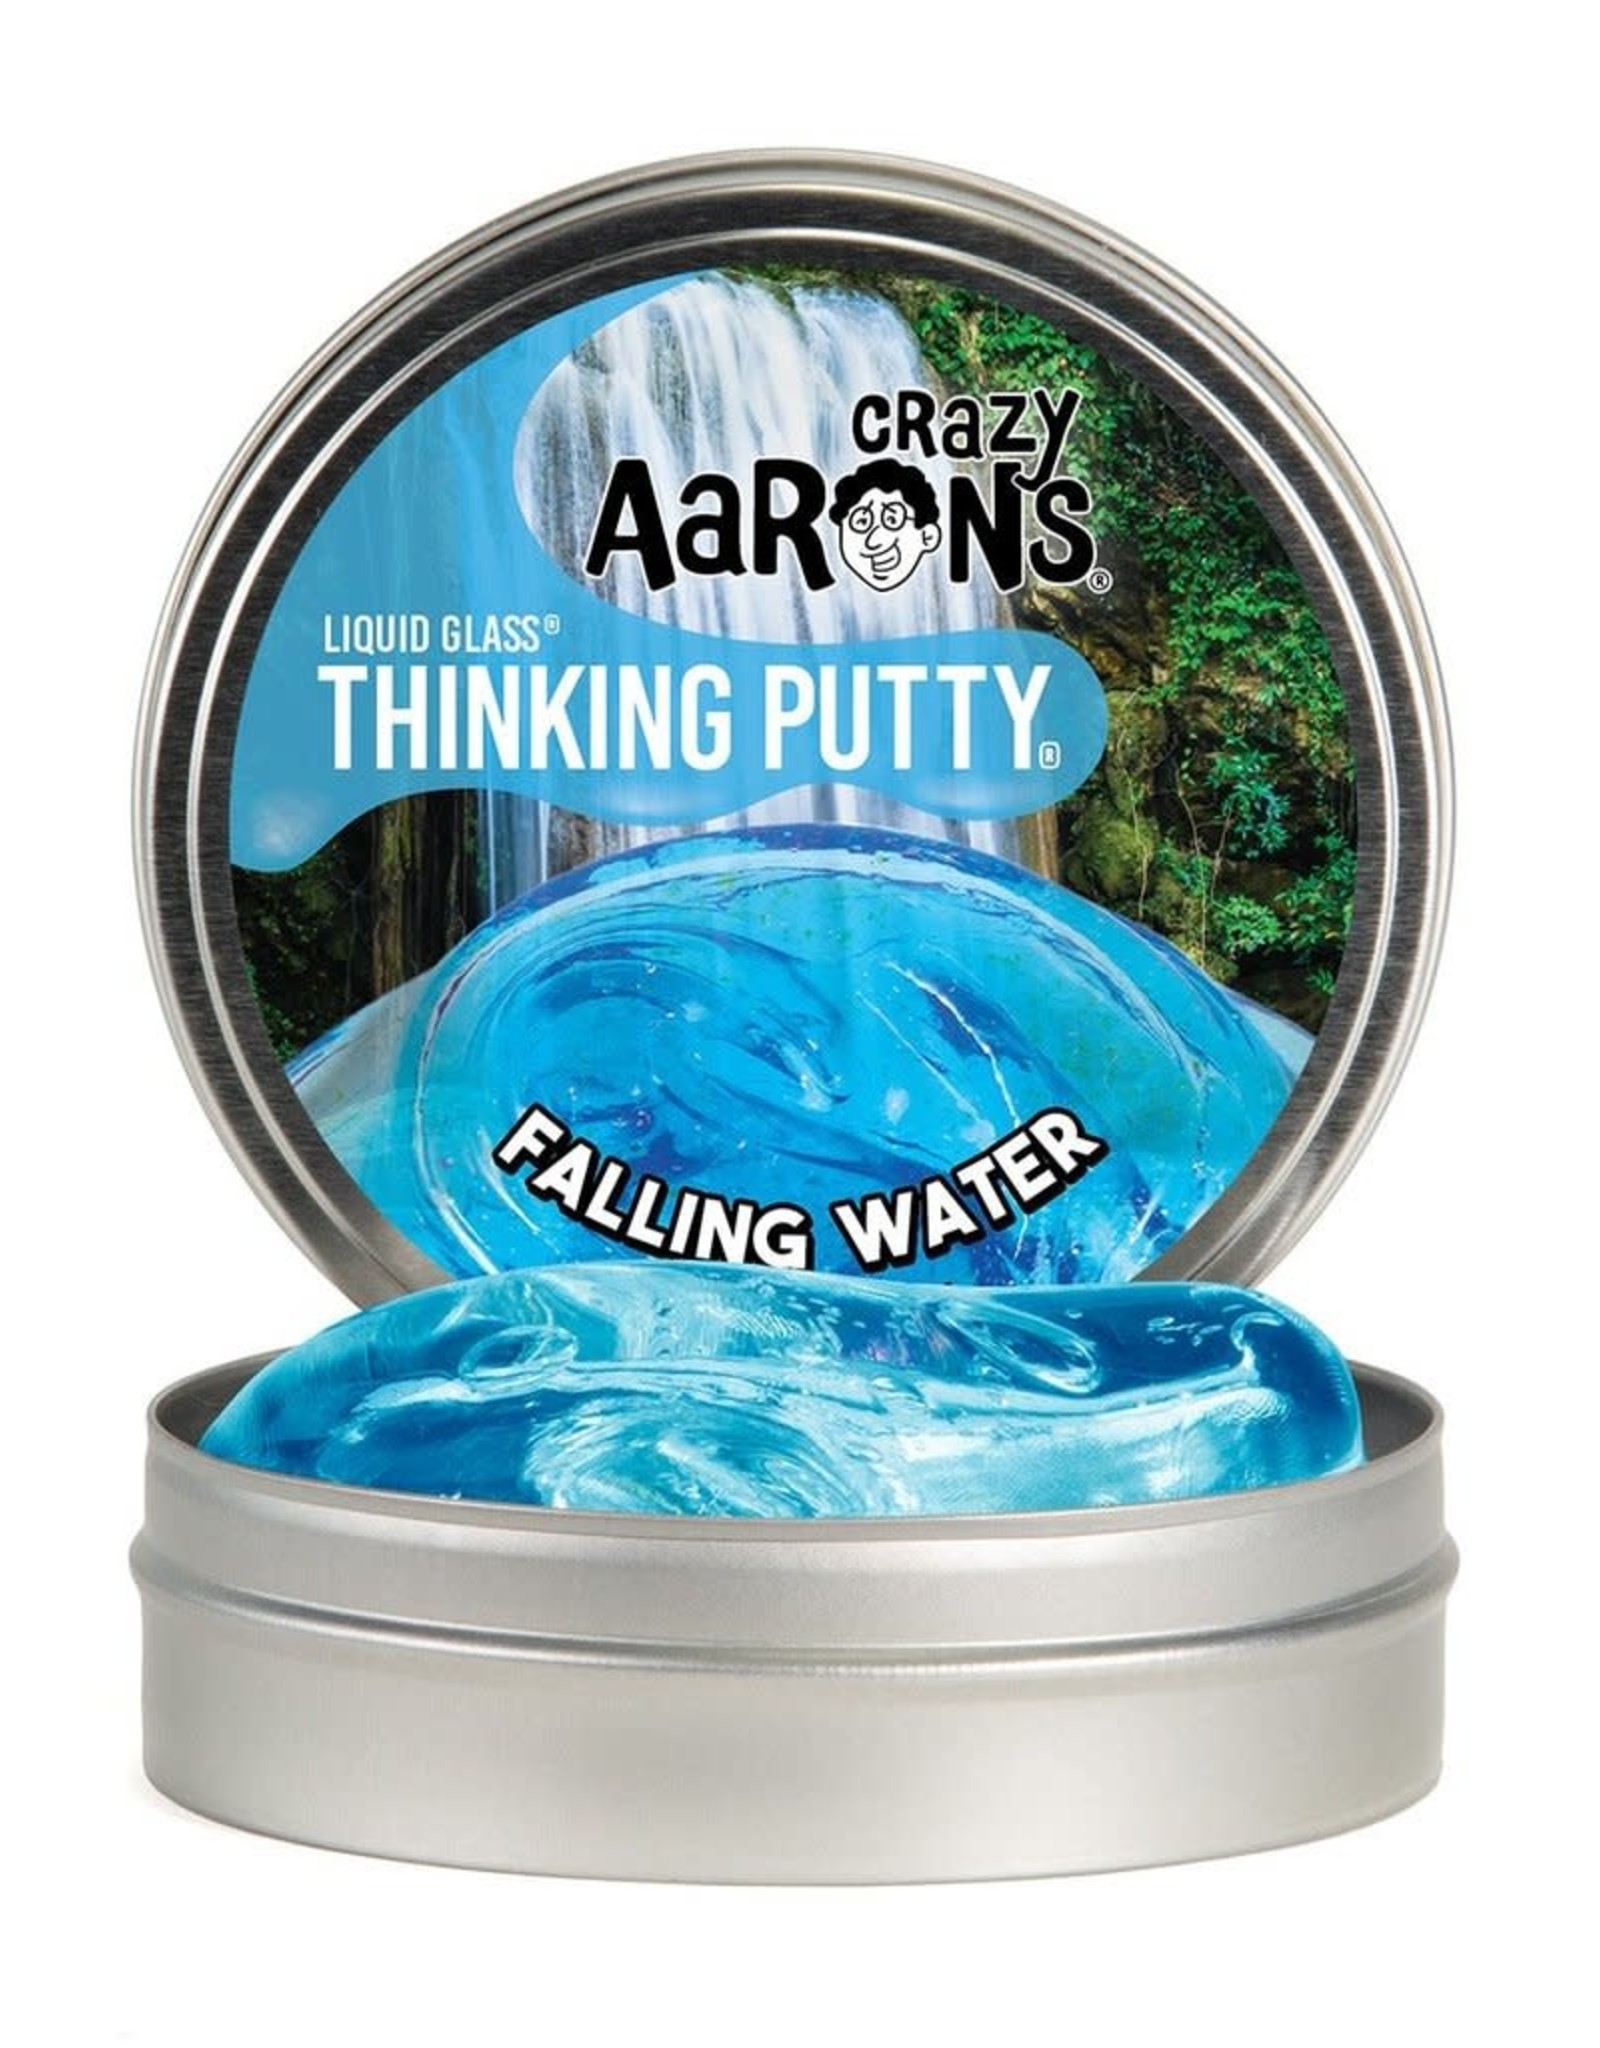 Crazy Aarons Putty 4'' Falling Water - Crazy Aaron's Thinking Putty